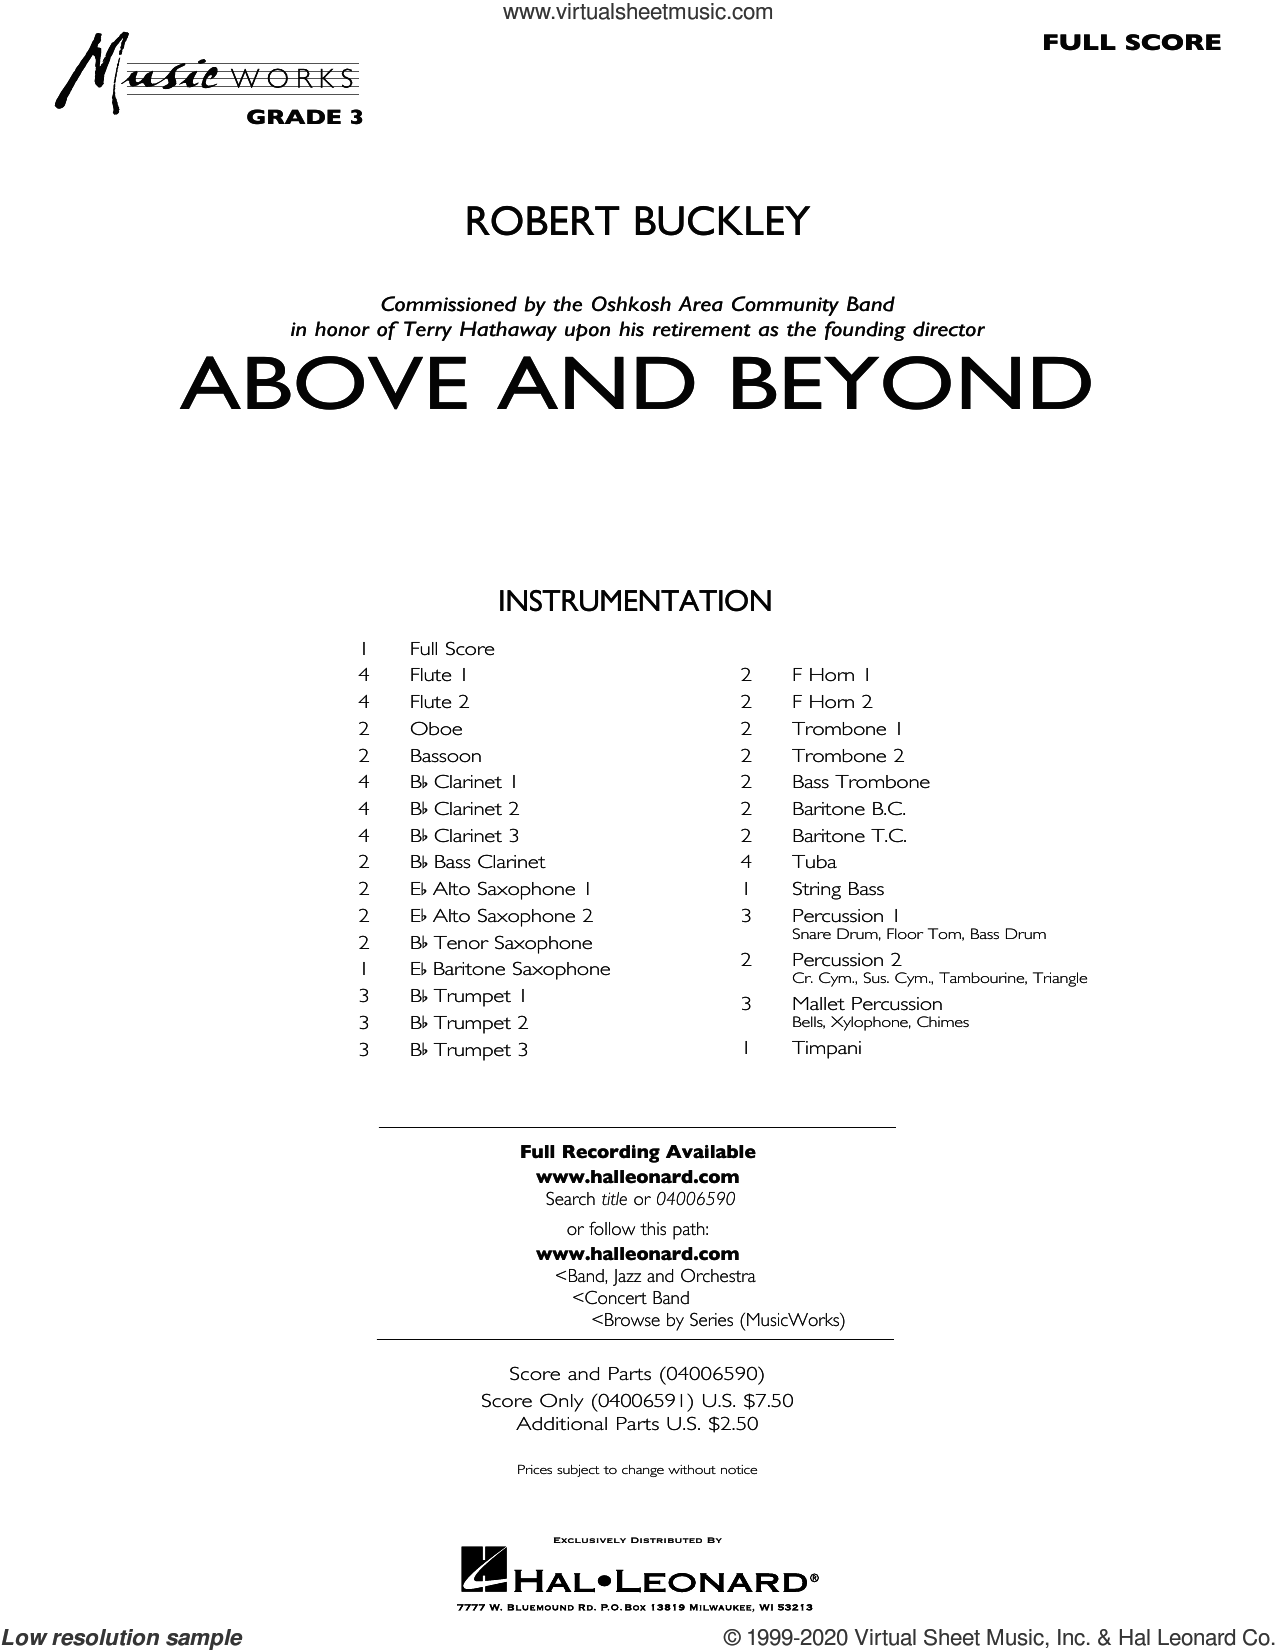 Above and Beyond (COMPLETE) sheet music for concert band by Robert Buckley, intermediate skill level